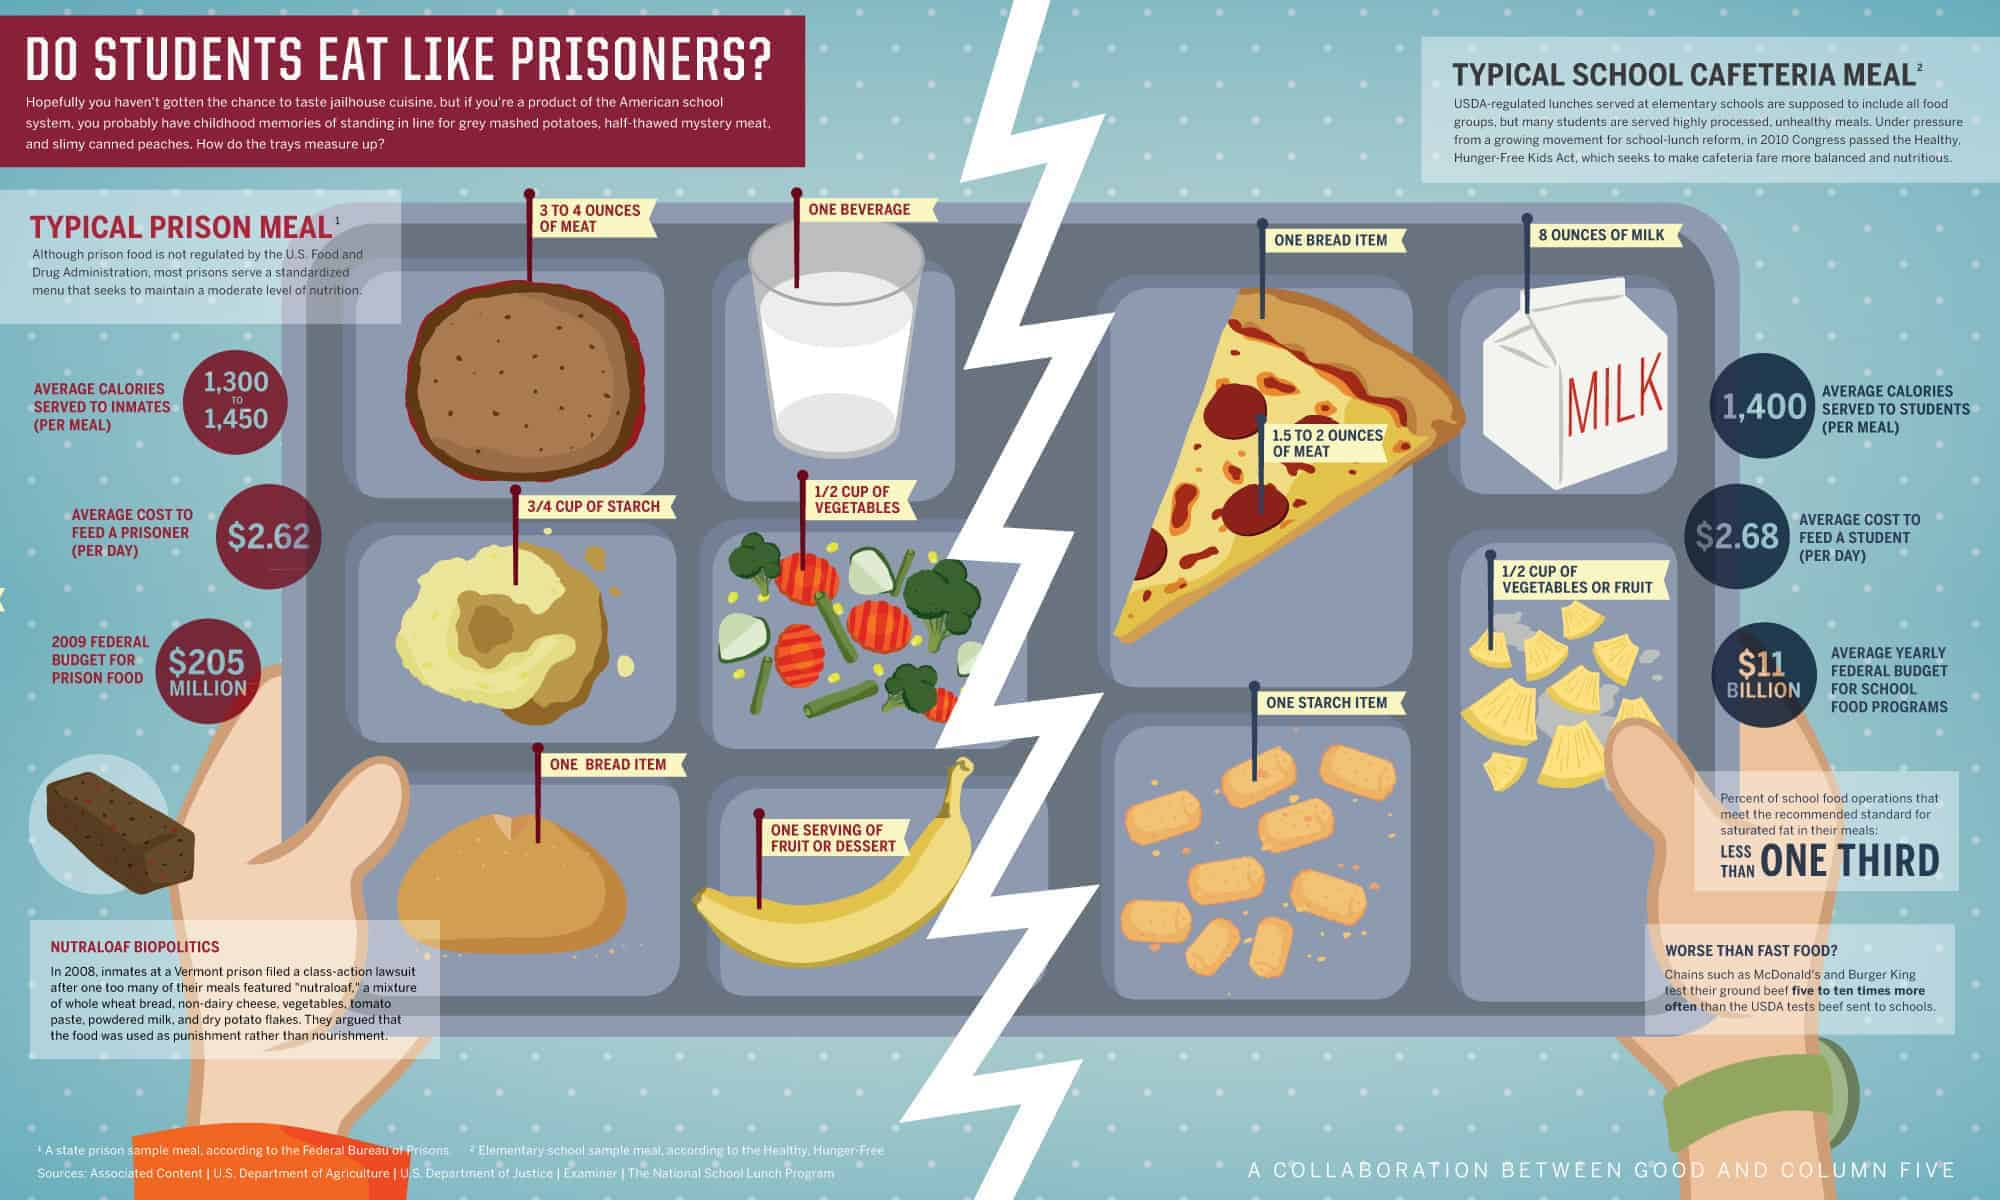 Infographic comparing school food to prison food